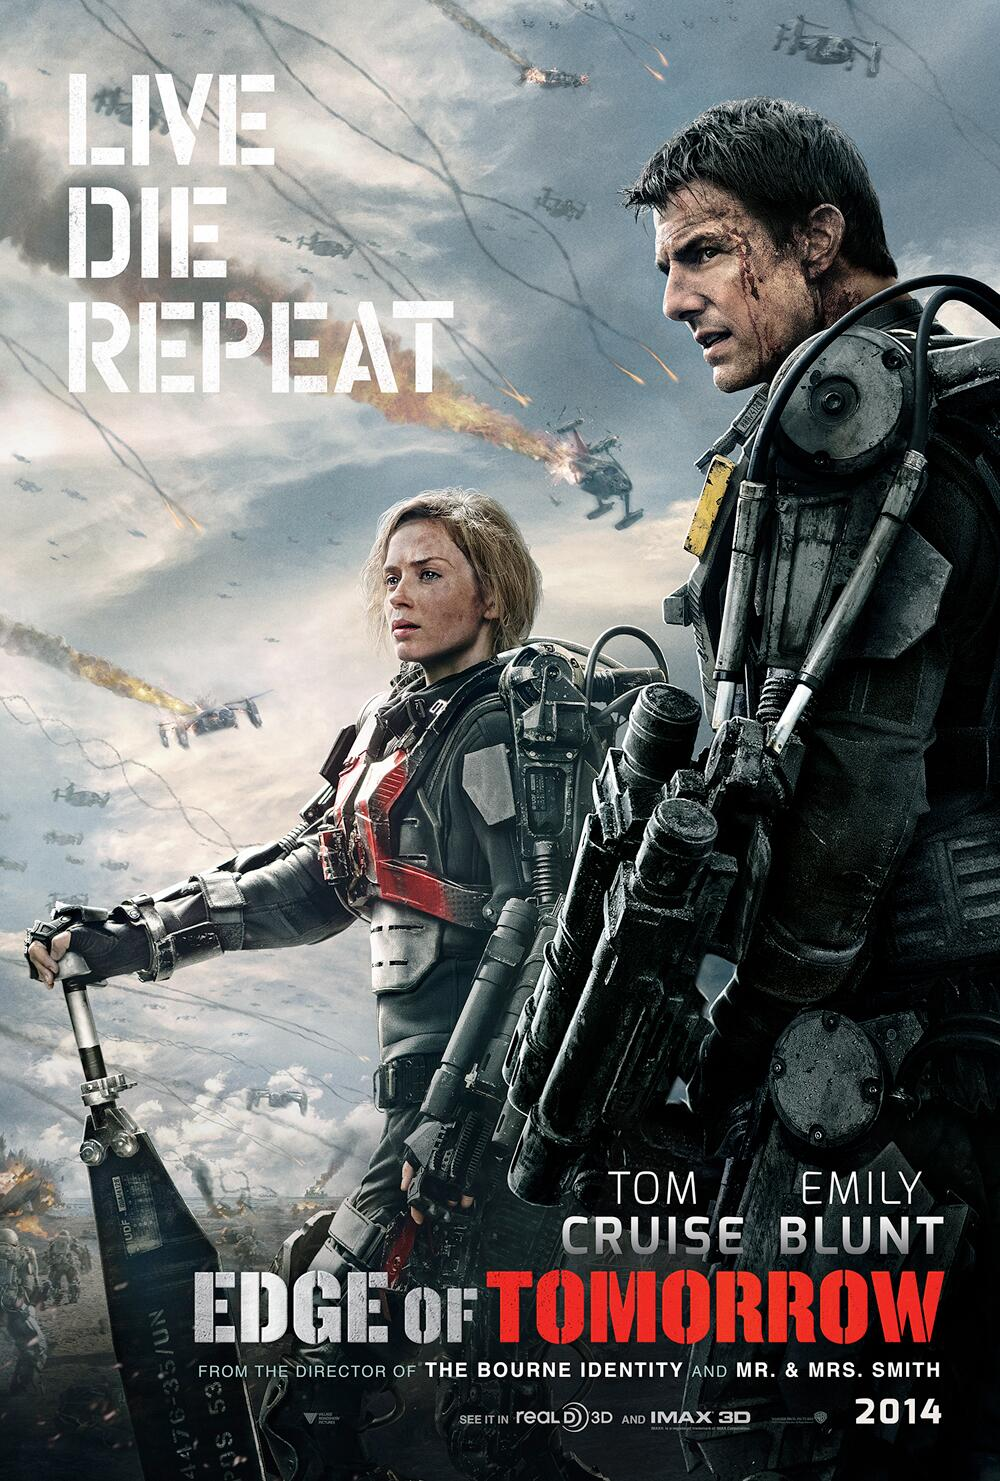 EDGE OF TOMORROW-Official Poster Banner PROMO POSTER-12DEZEMBRO2013-02